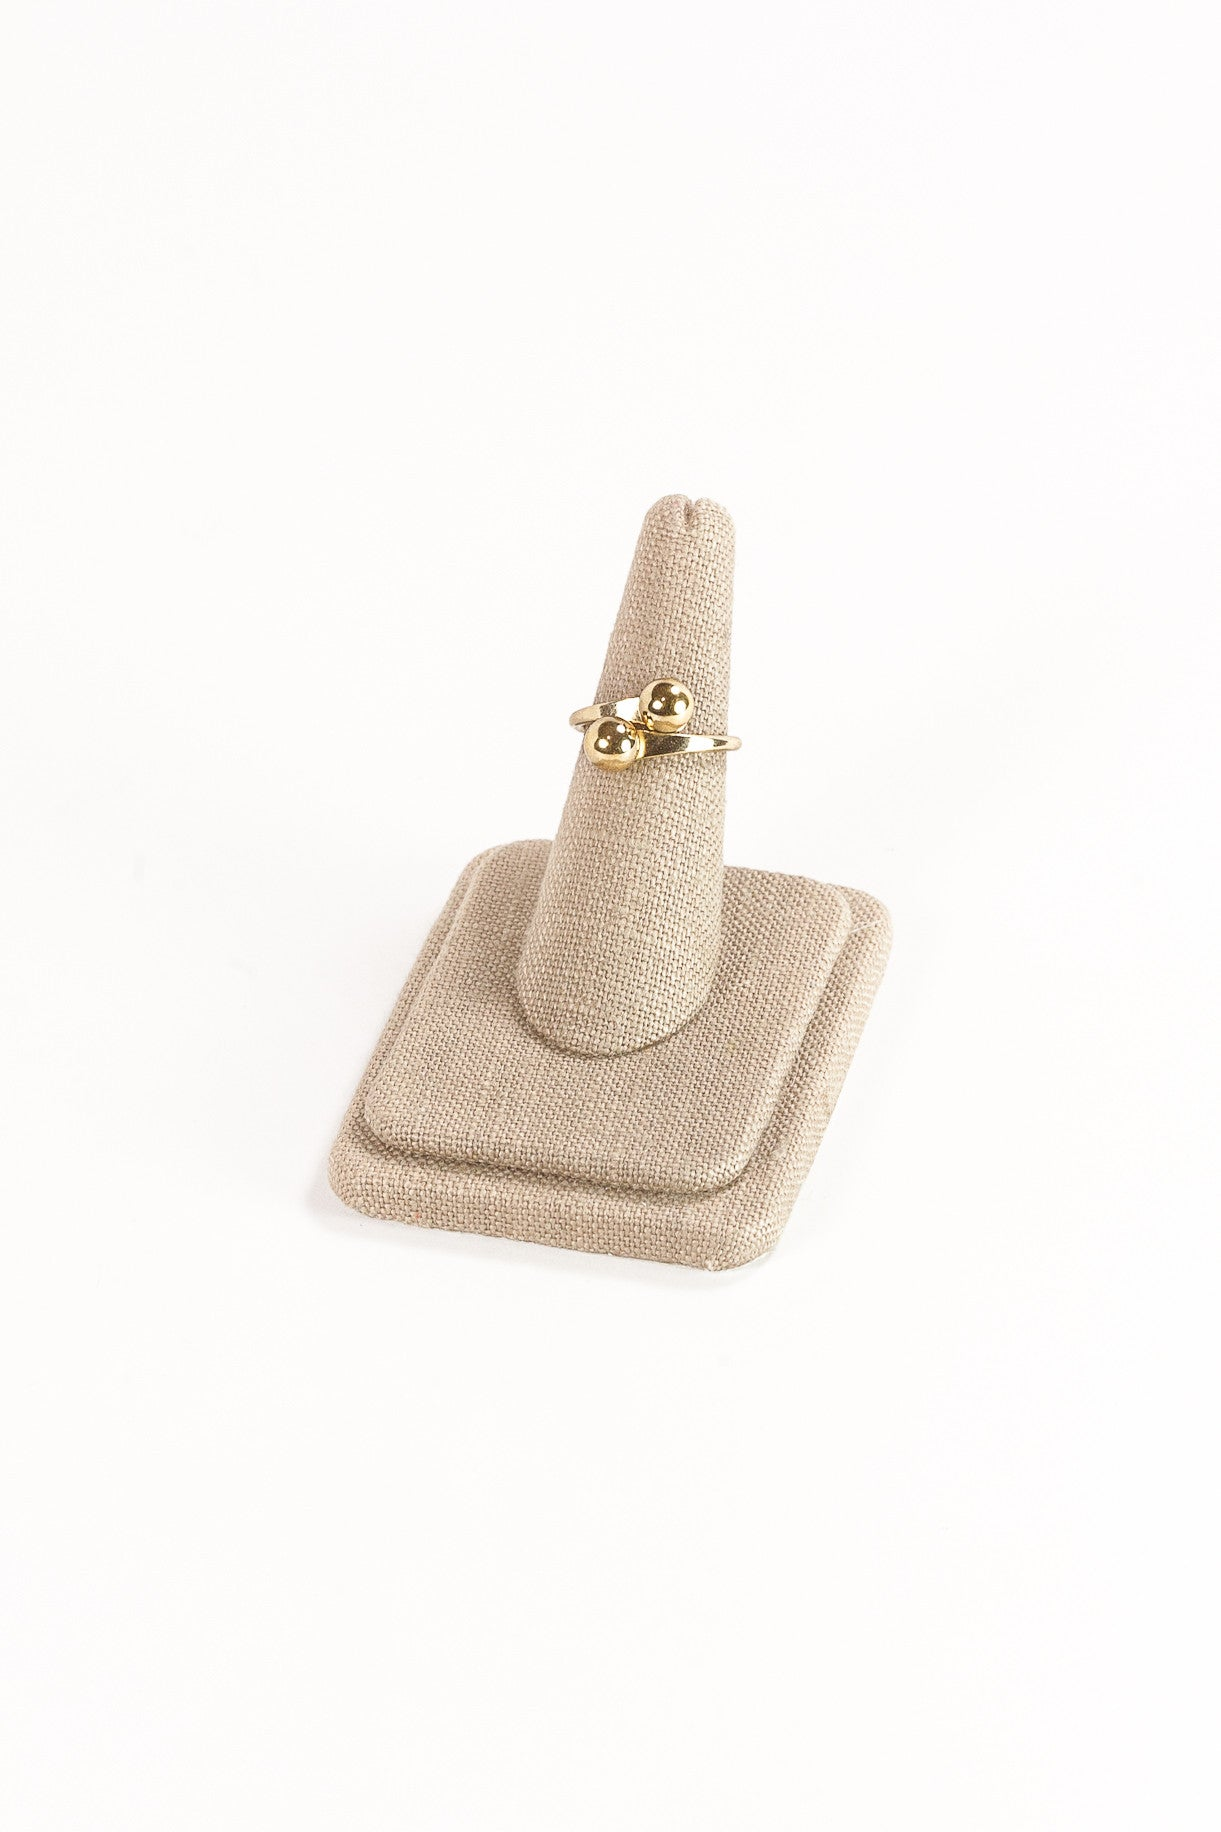 60's__Caroline__Dainty Gold Ball Ring